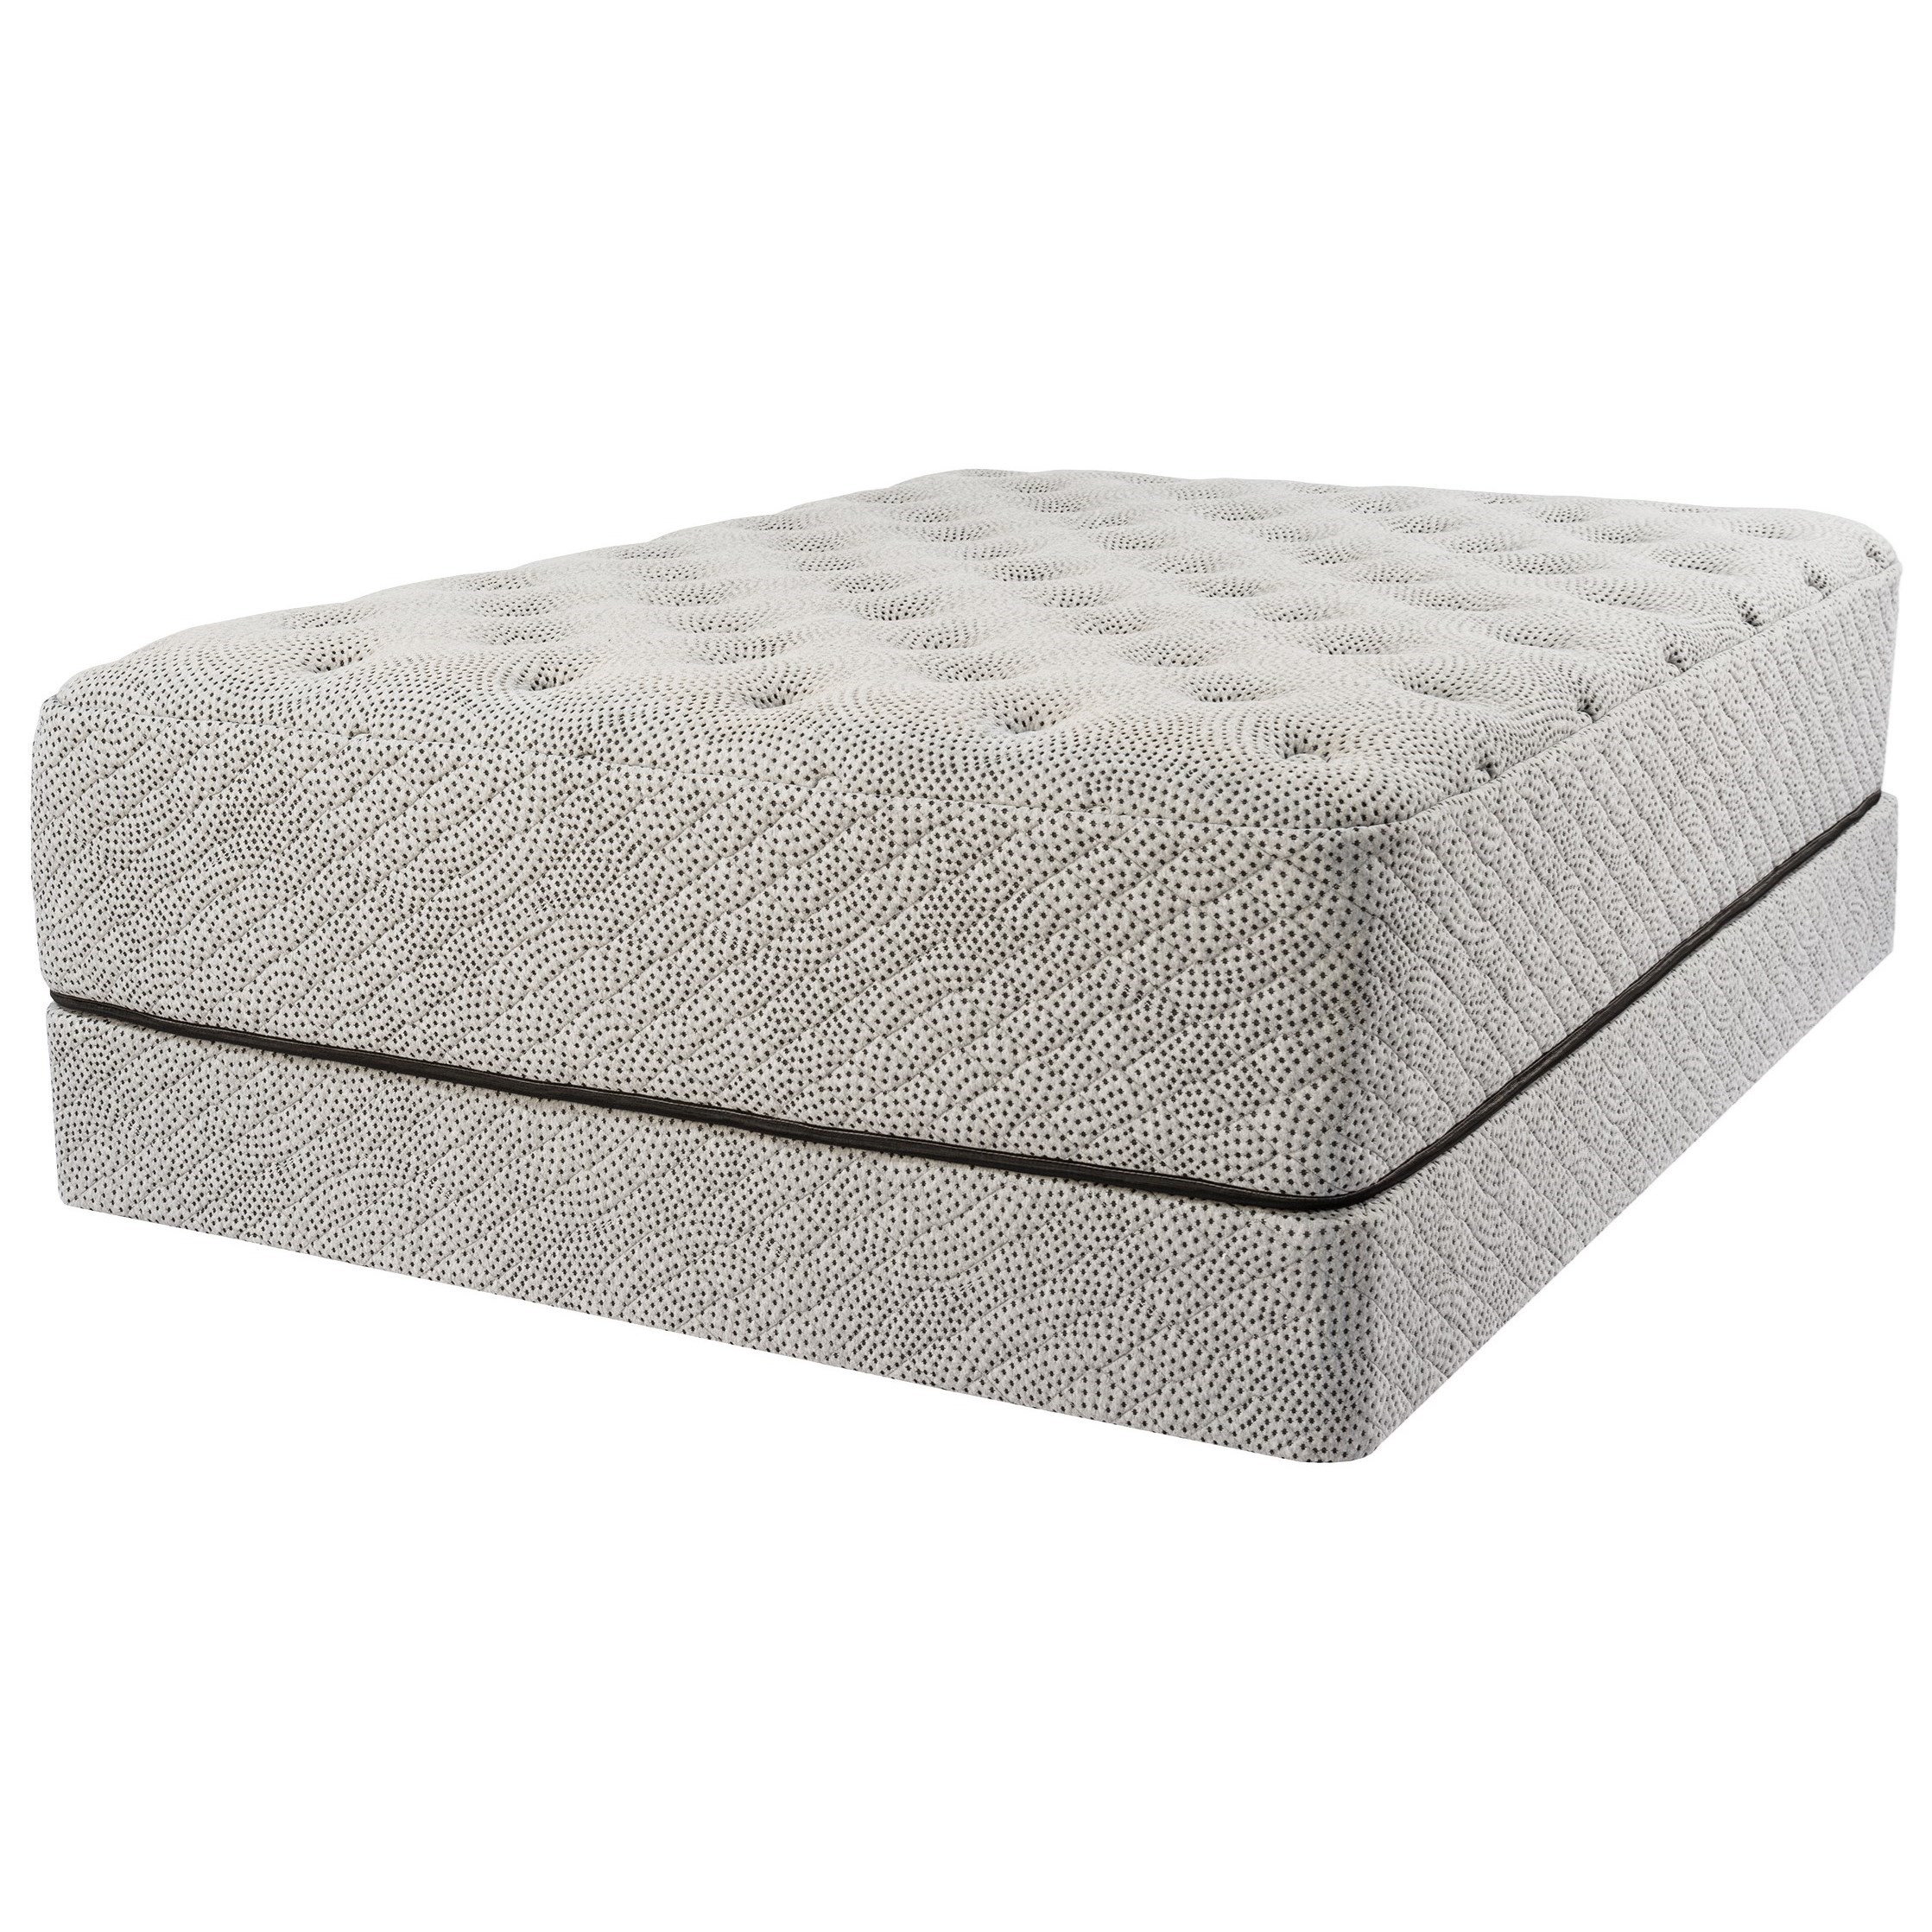 "Roma Firm Twin 12"" Latex Eco Friendly Mattress Set by Sonnett Sleep at Rotmans"